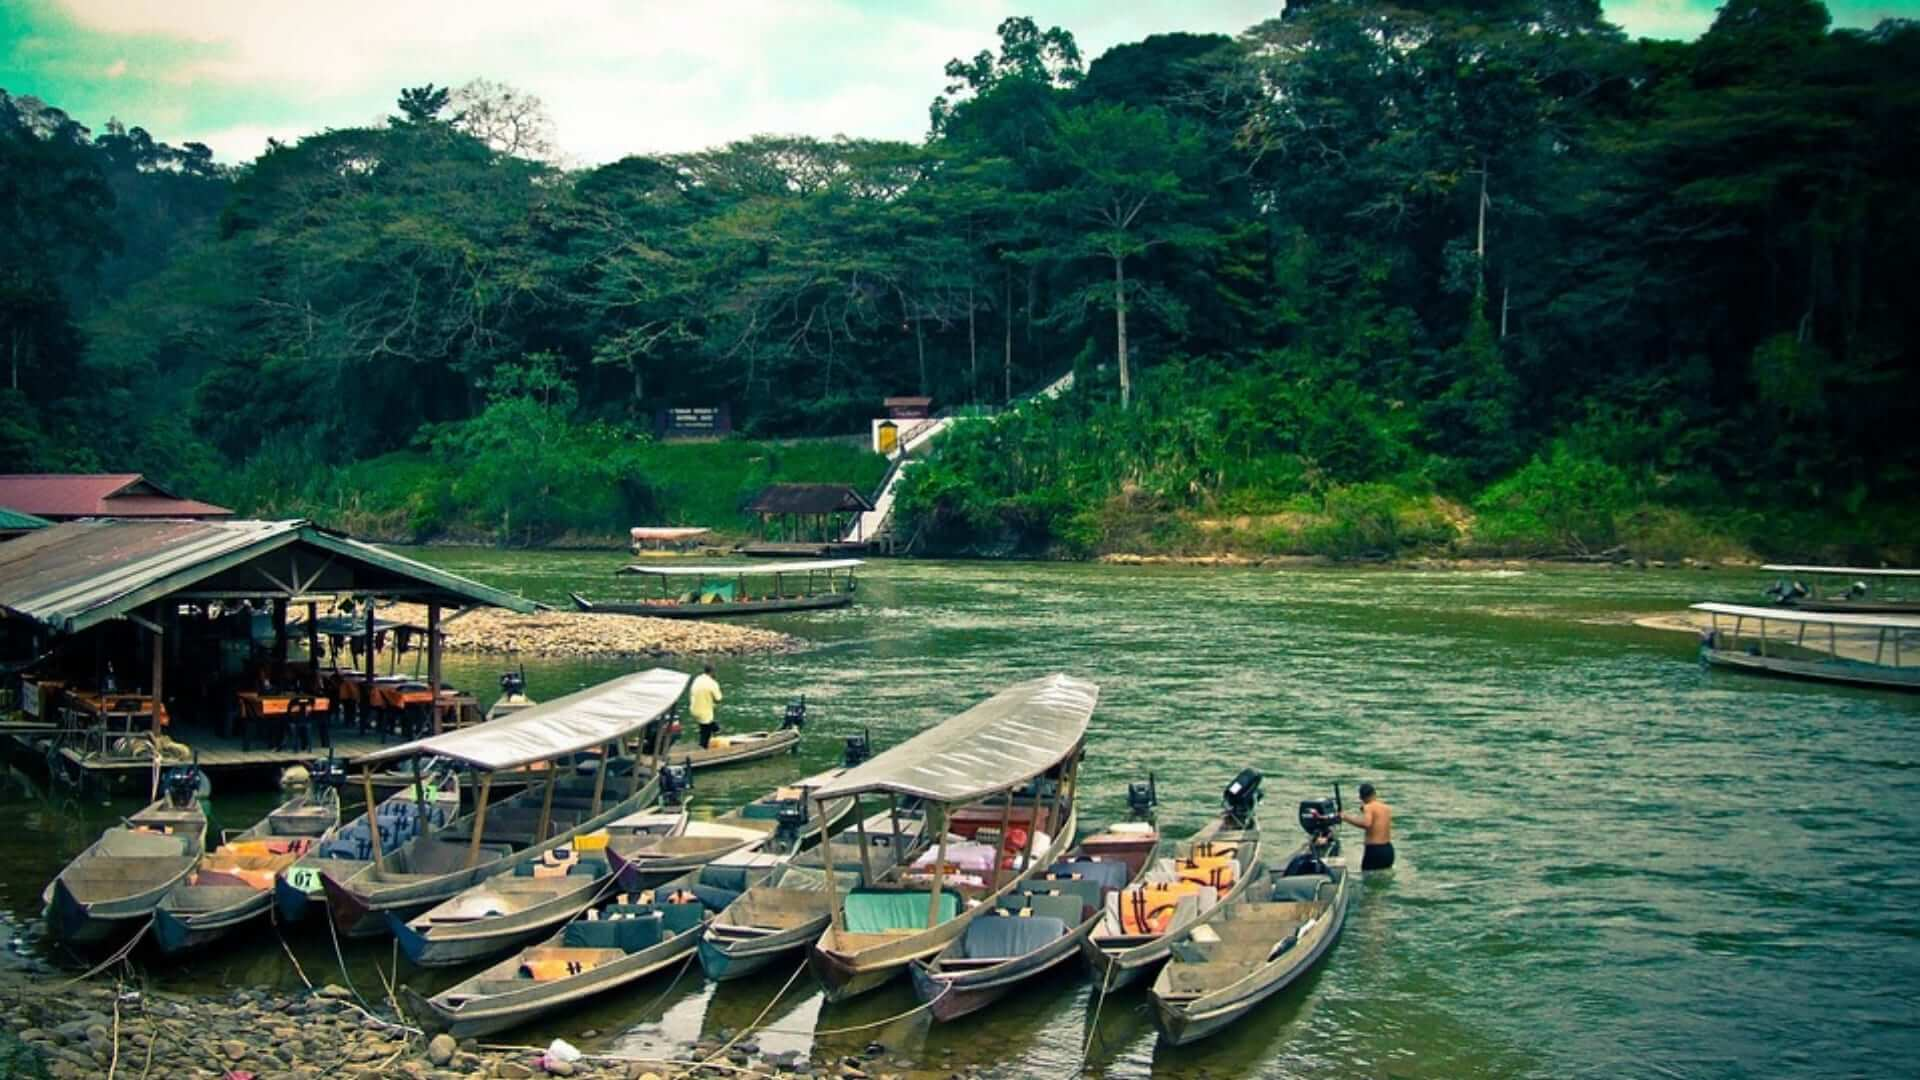 Boats are laying in a river in a jungle in Malaysia.